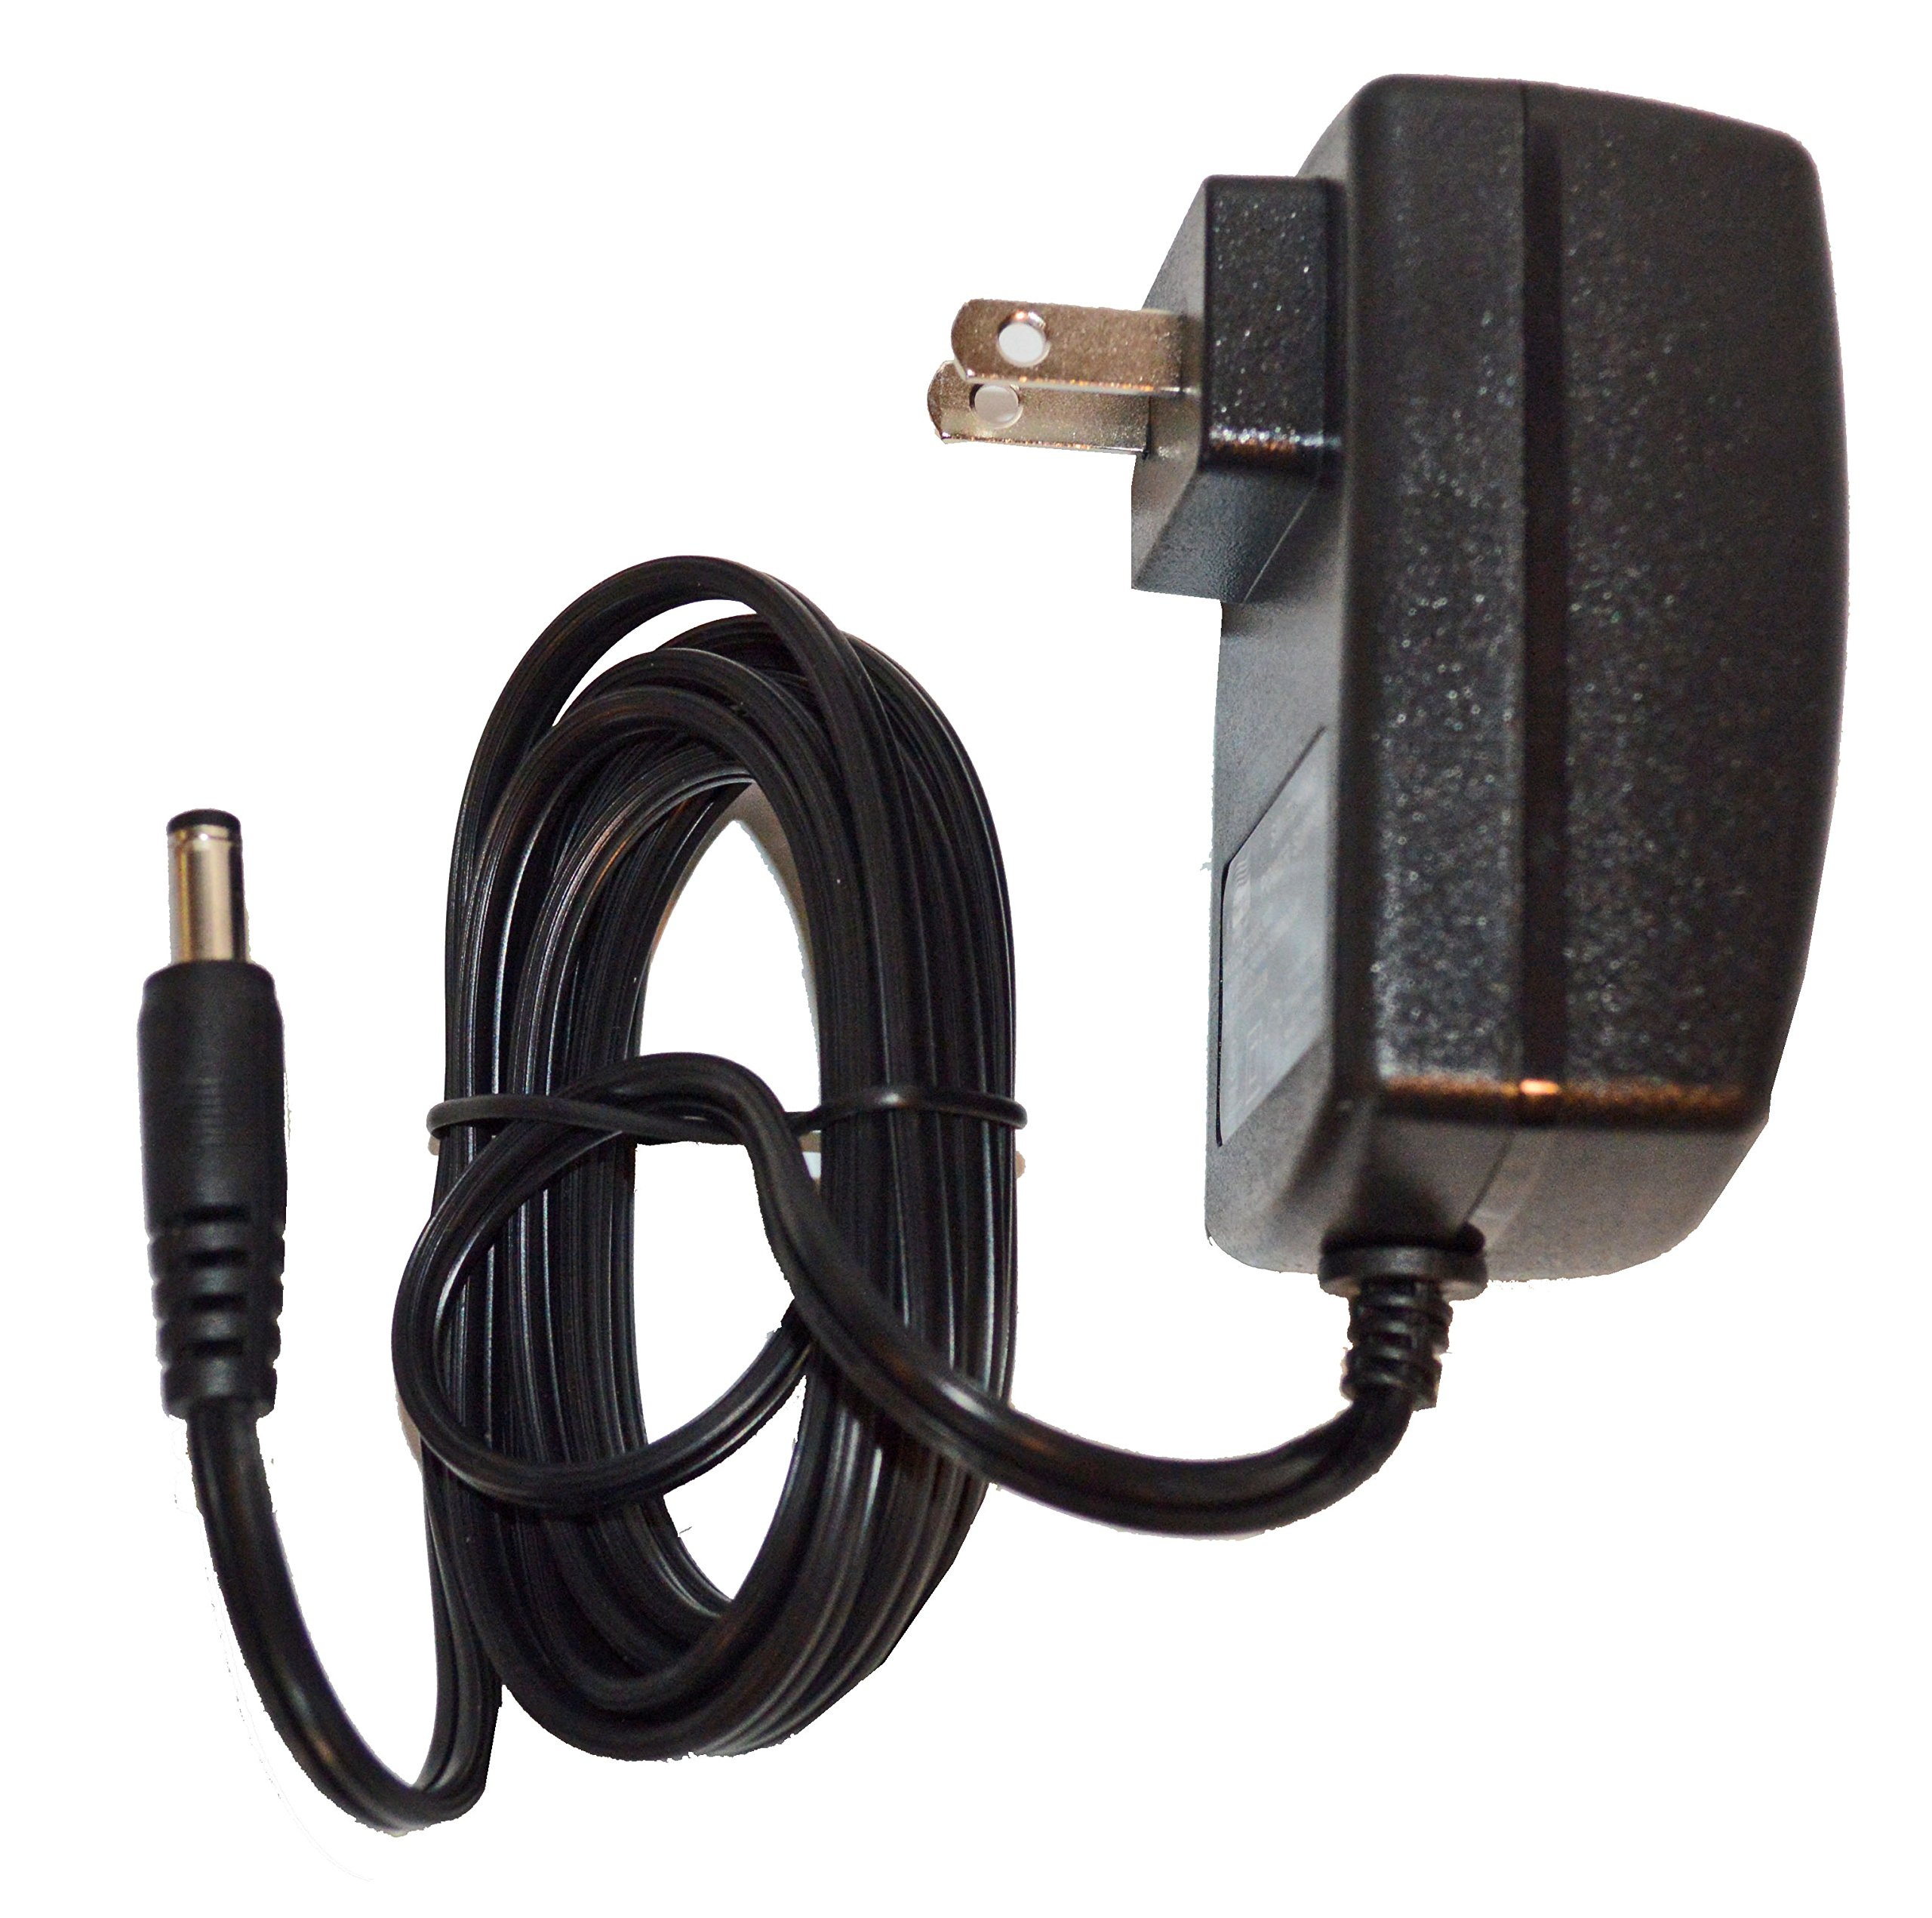 Tranquil Ease Chair 2A Transformer Power Supply Adapter